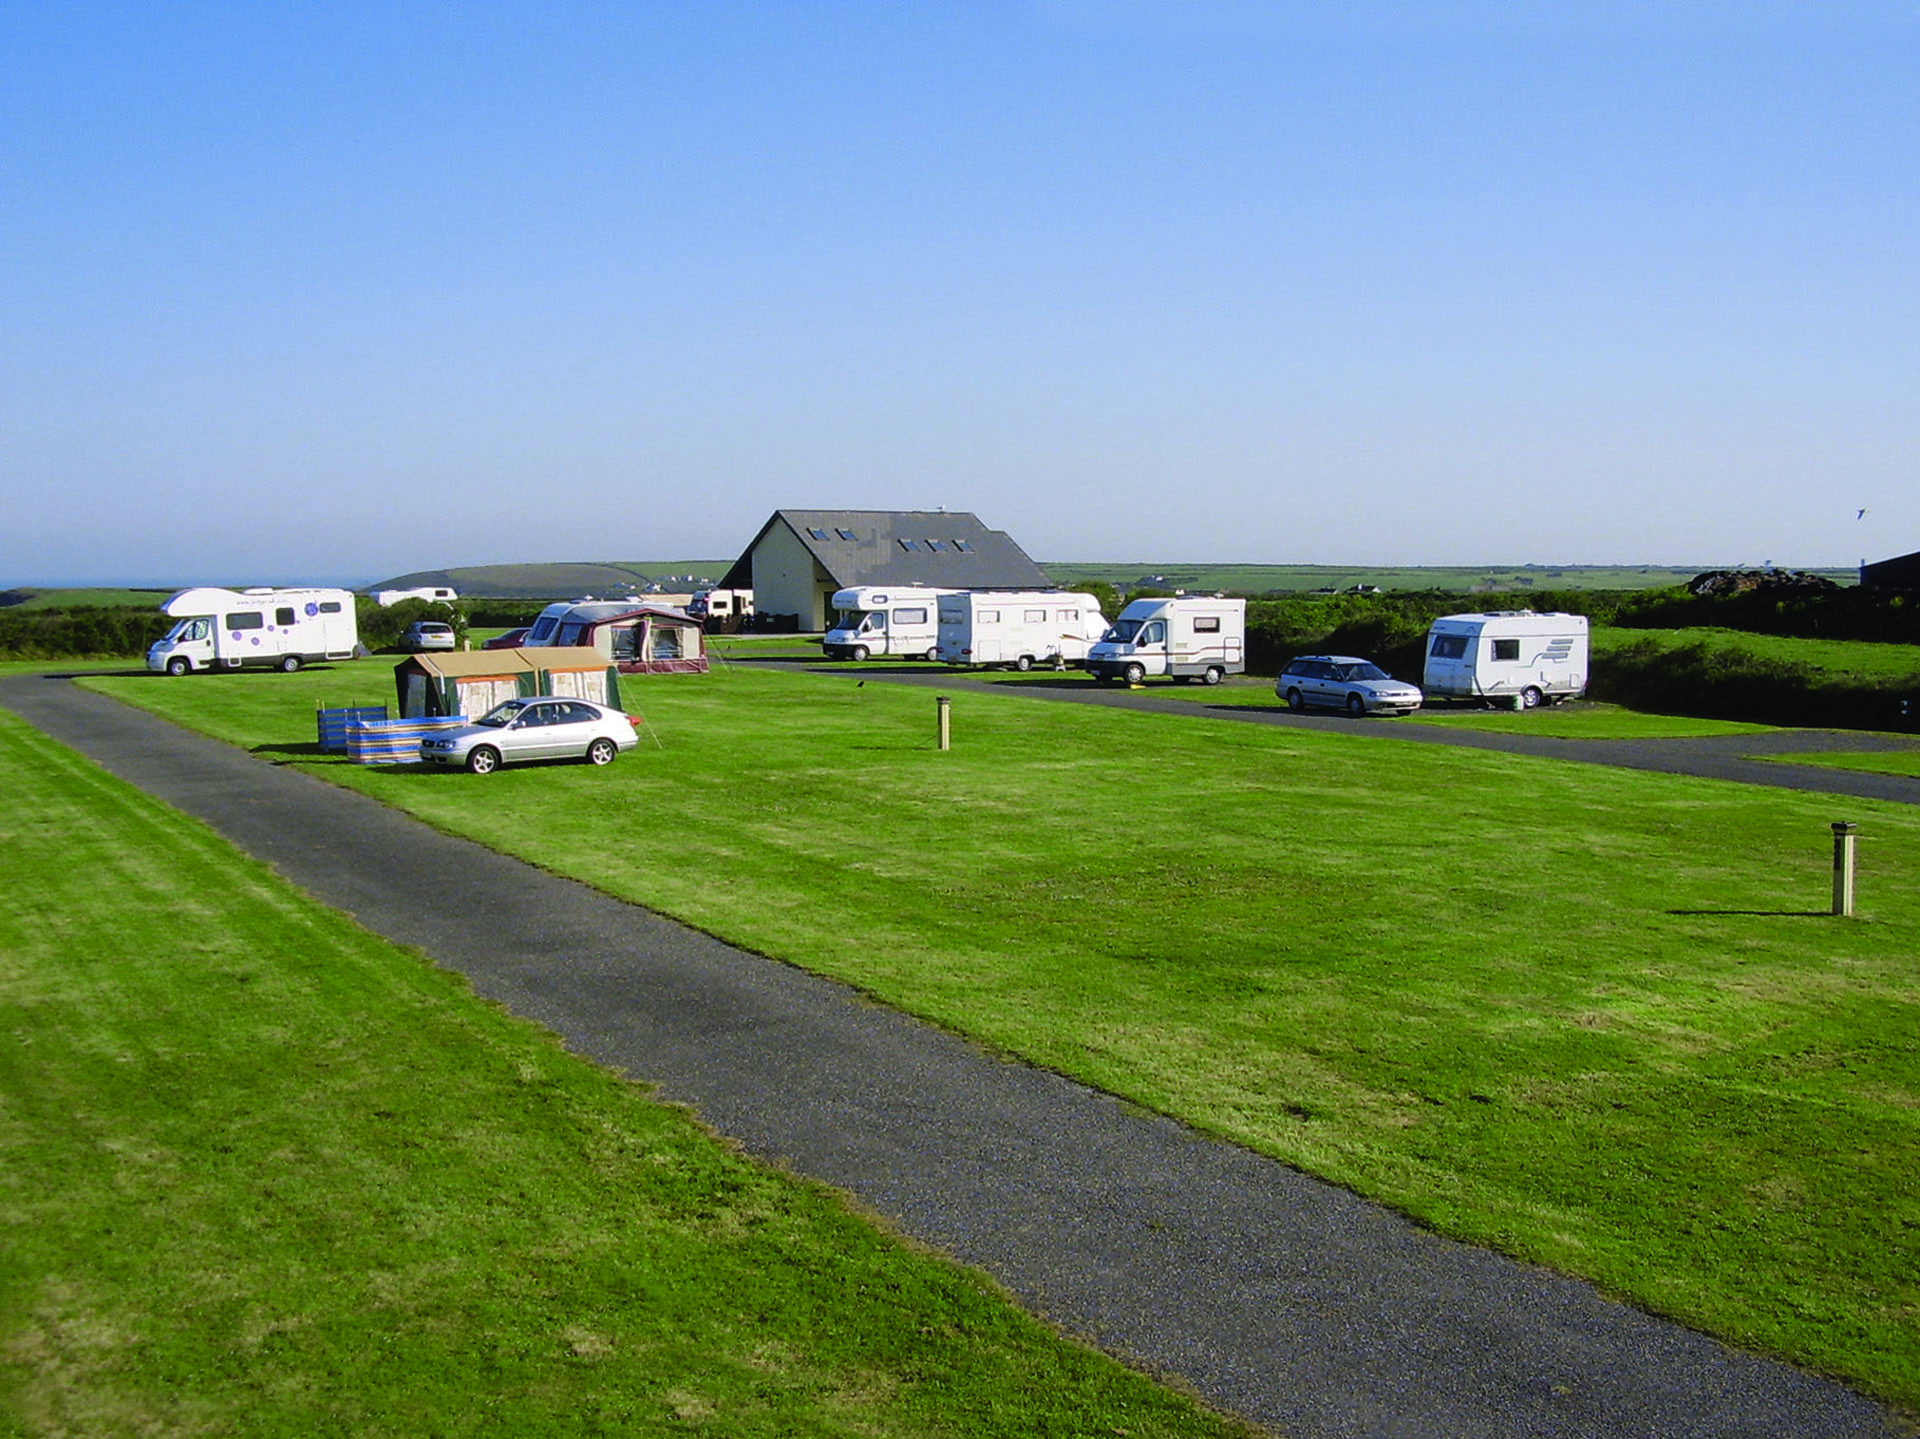 Salisbury - Camping and Caravanning Club Site - The